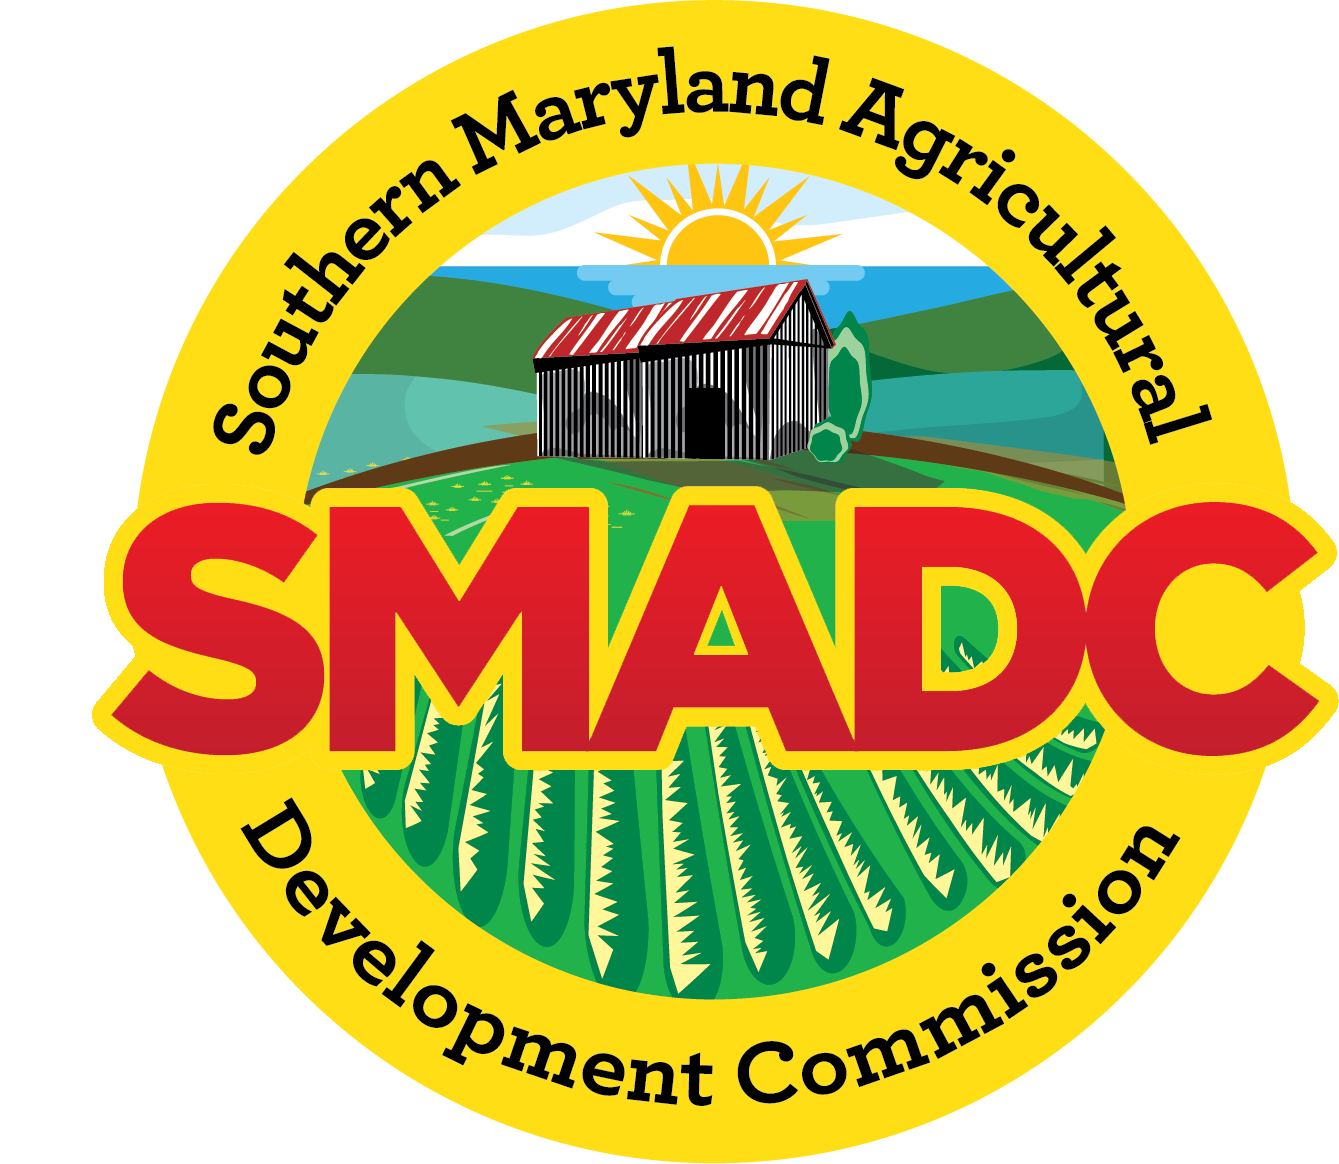 Southern Maryland Agricultural Development Commission